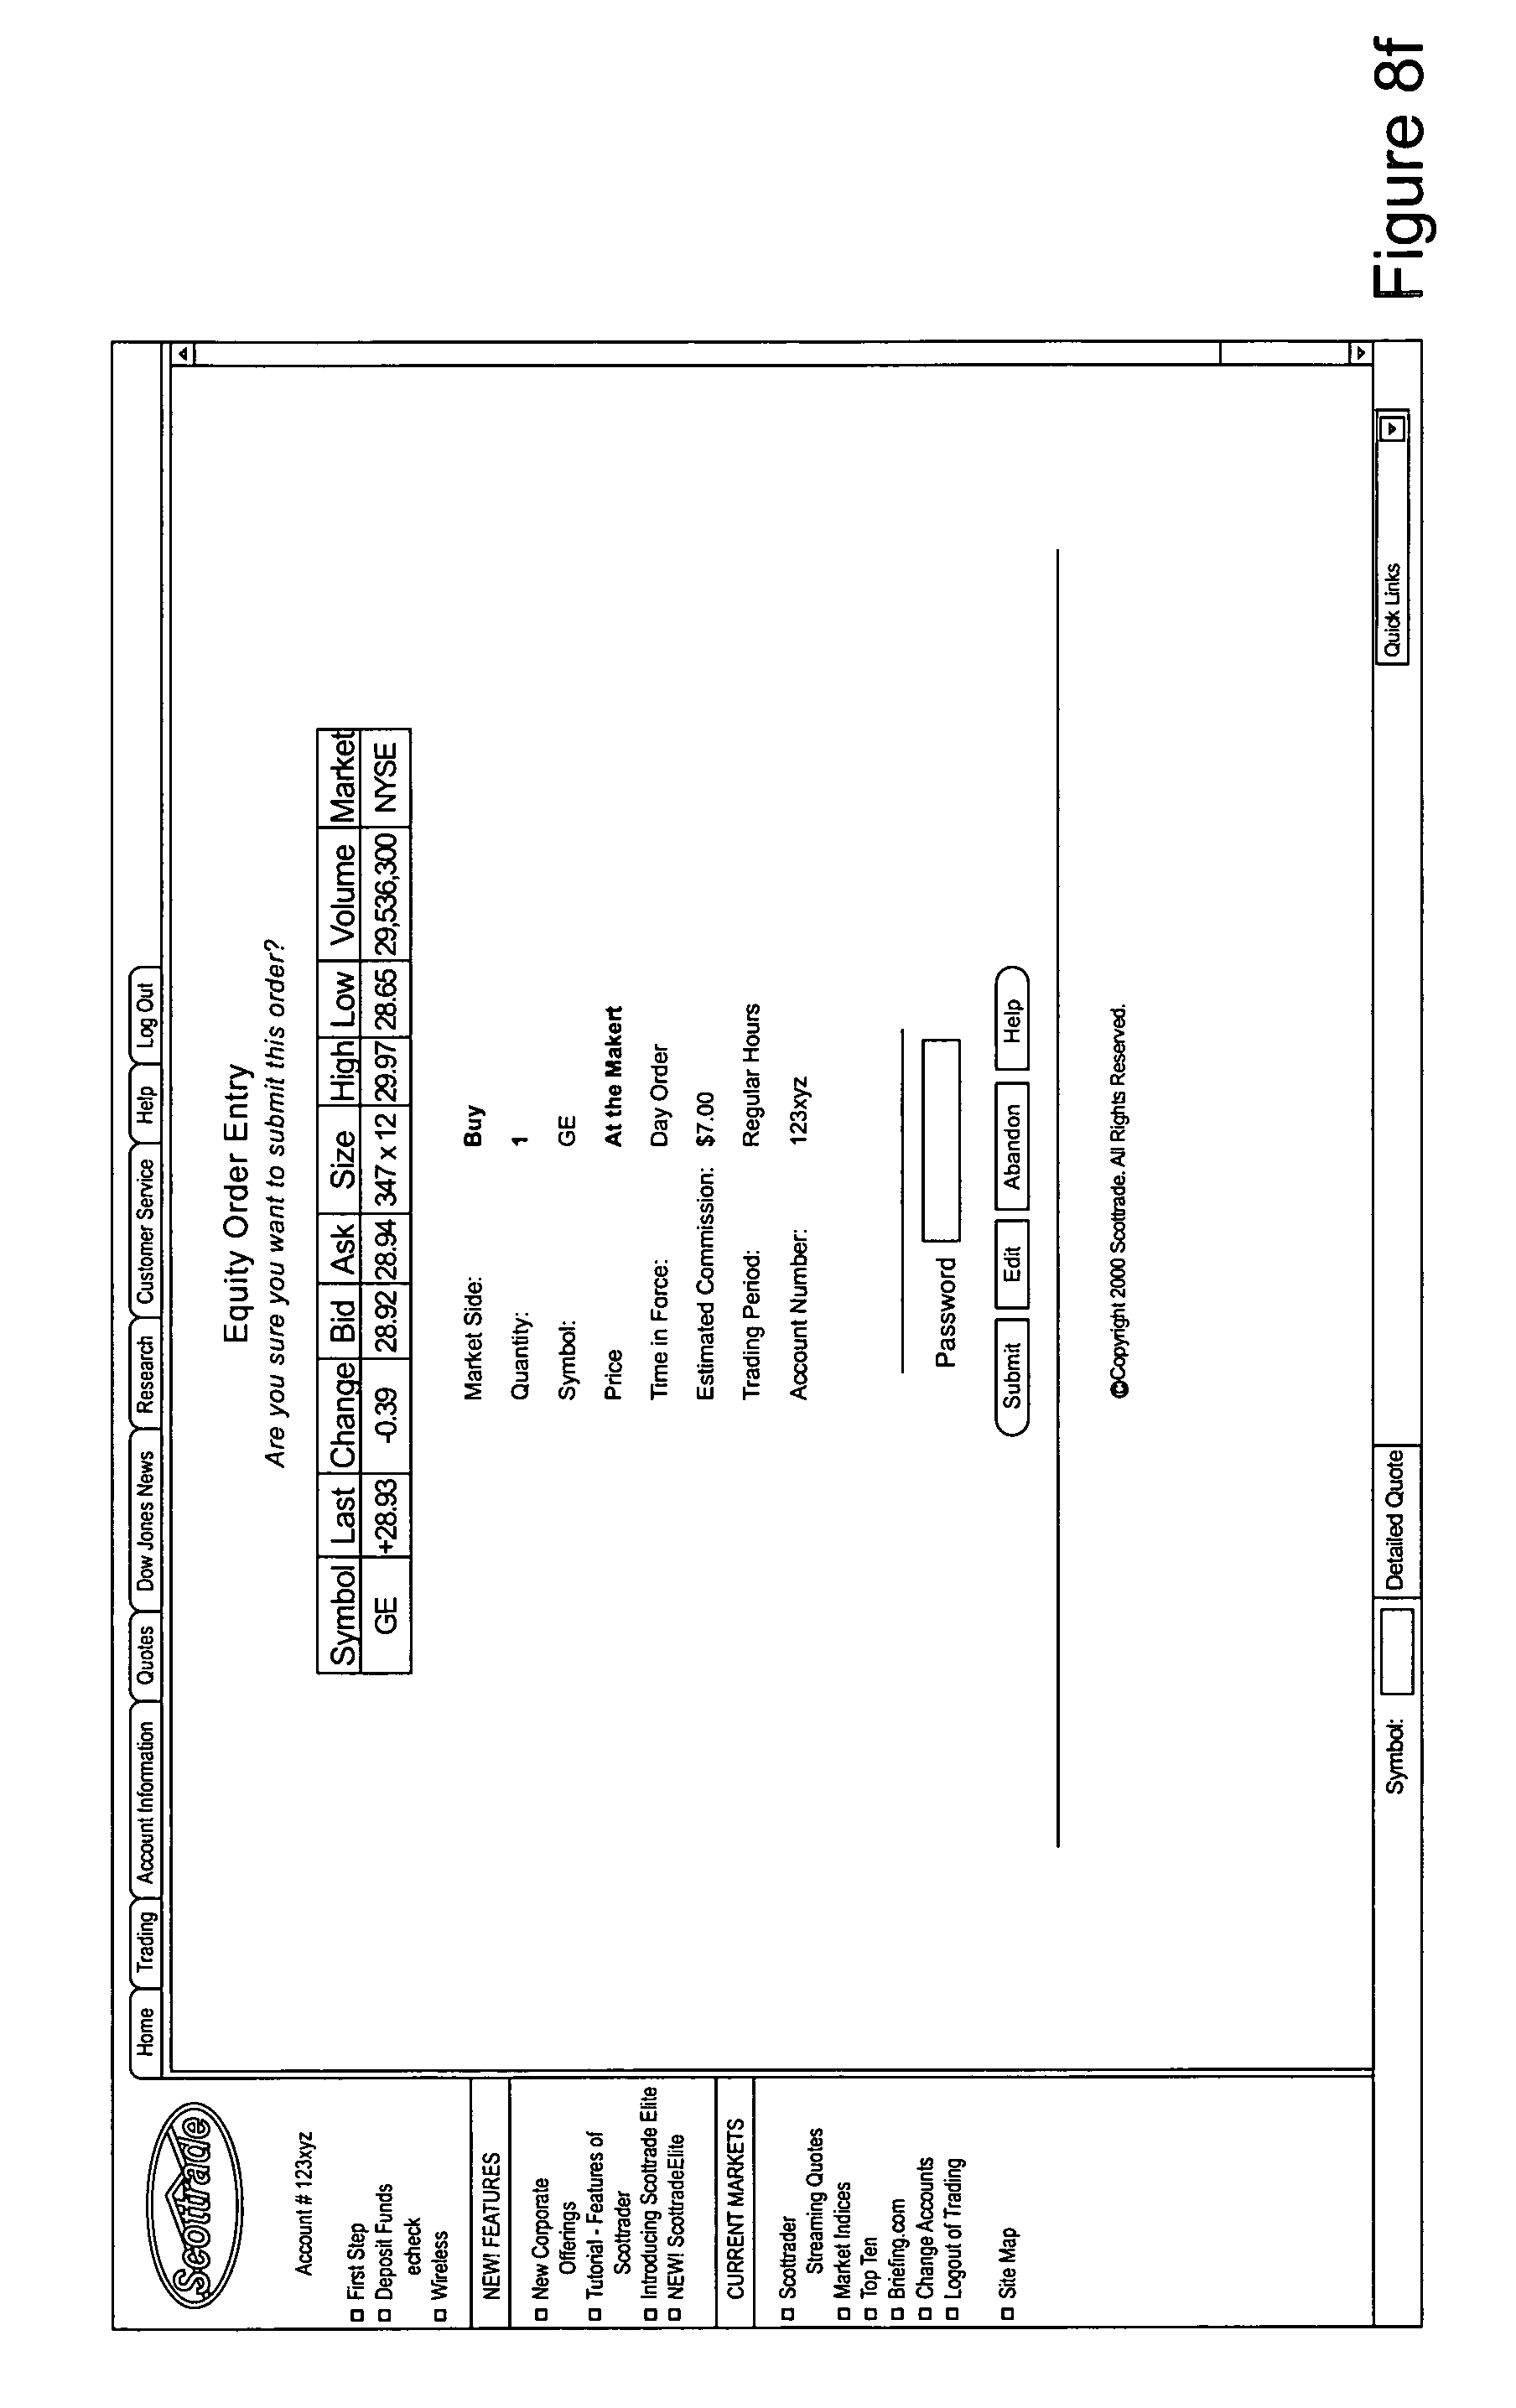 Scottrade Stock Quotes Patent Us8655755  System And Method For The Automated Brokerage